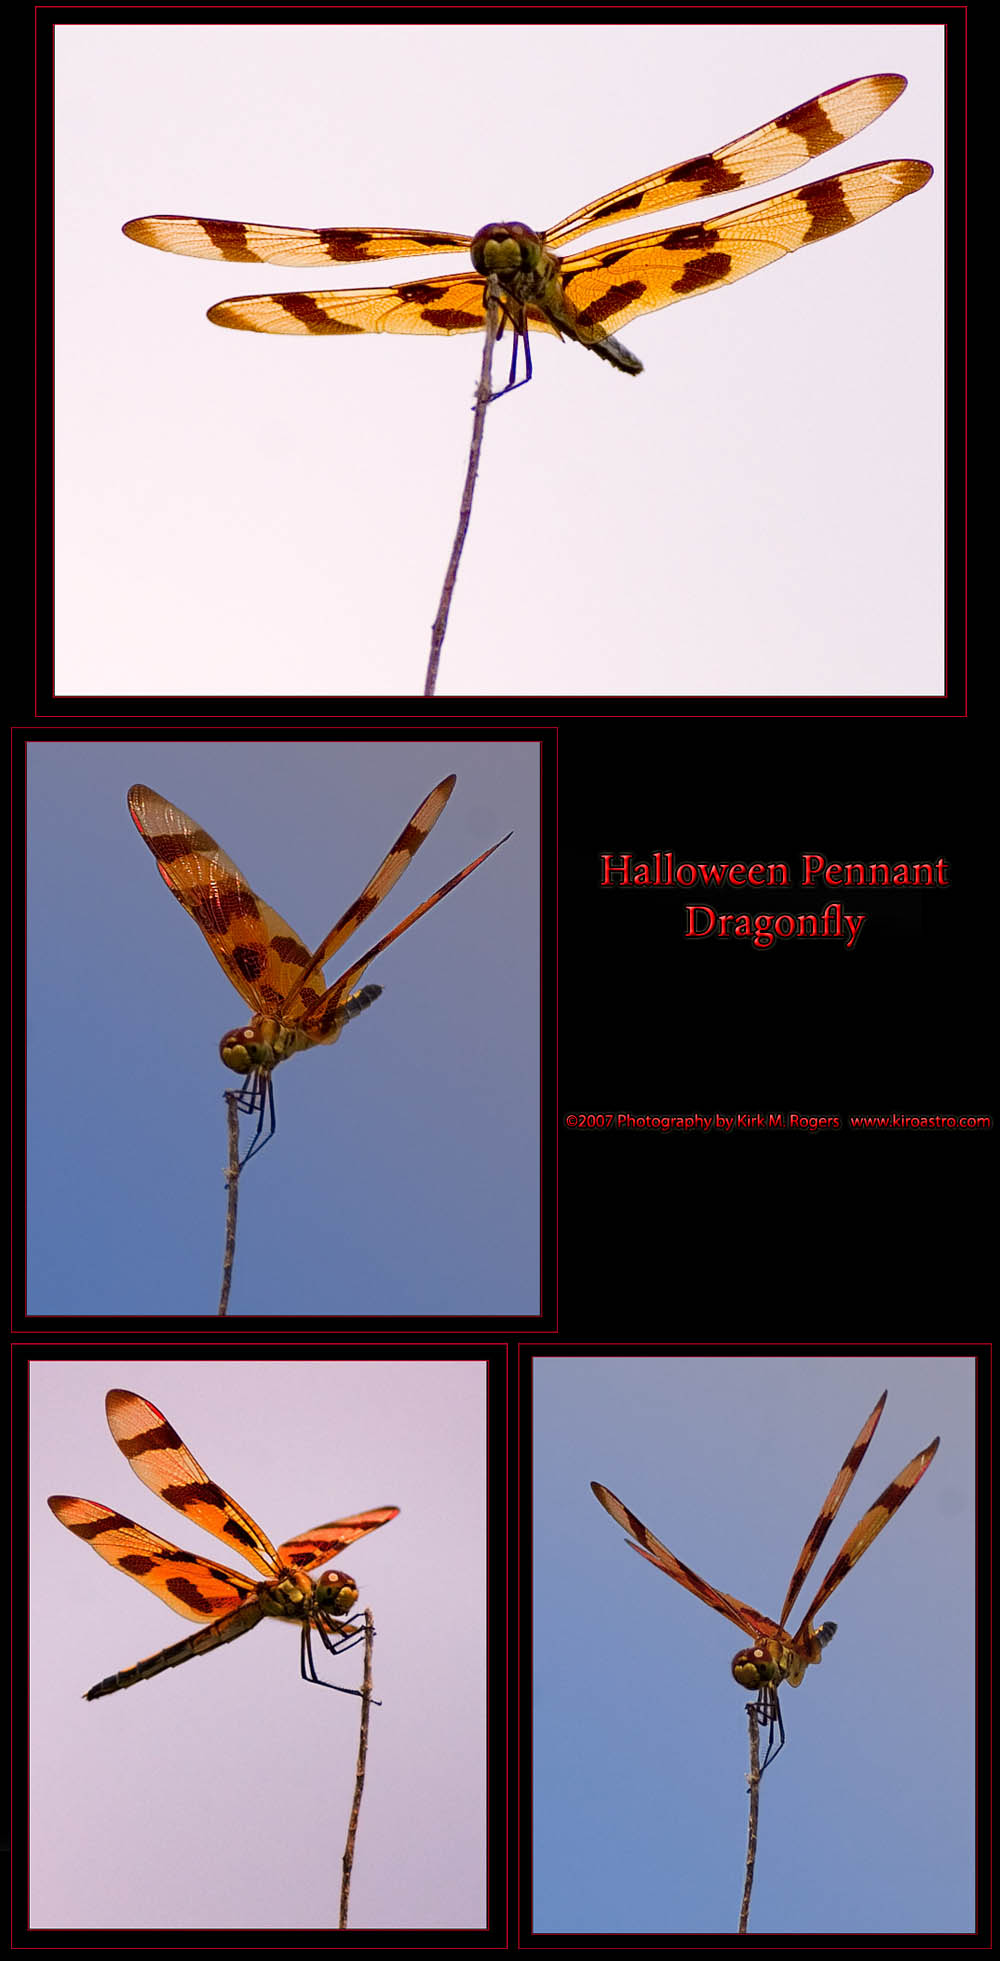 Halloween Pennant - Dragonfly